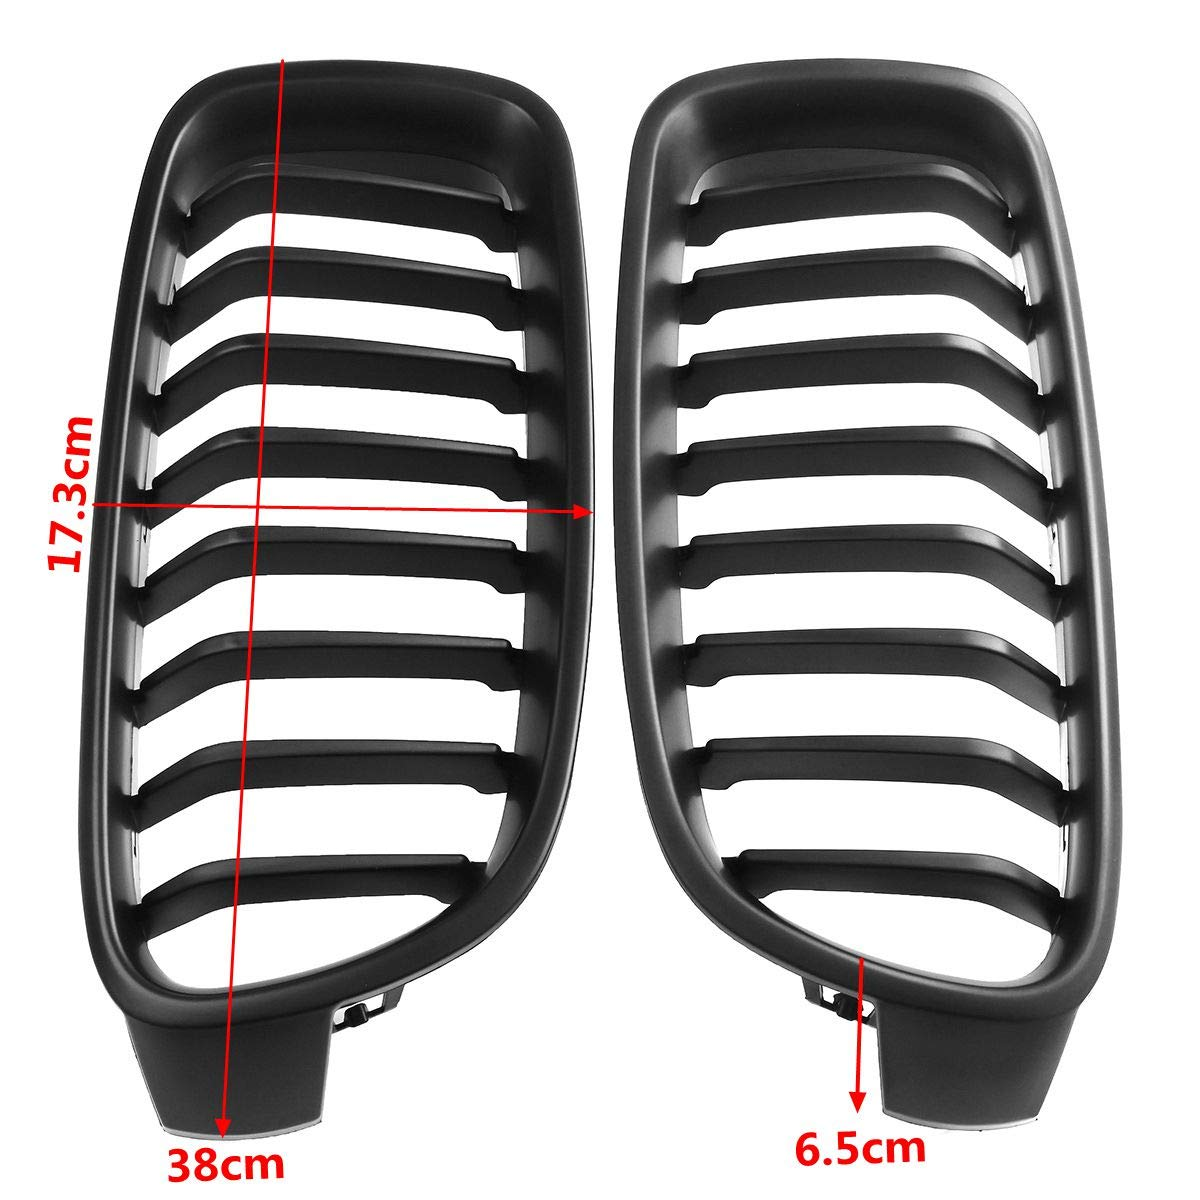 1 Pair Matte Black Front Kidney Grill Sport Style Grilles Front Bumper Grill Grille Guard Replacement Fit for BMW F30 F31 F35 3 Series 2012-2017 Car Accessories